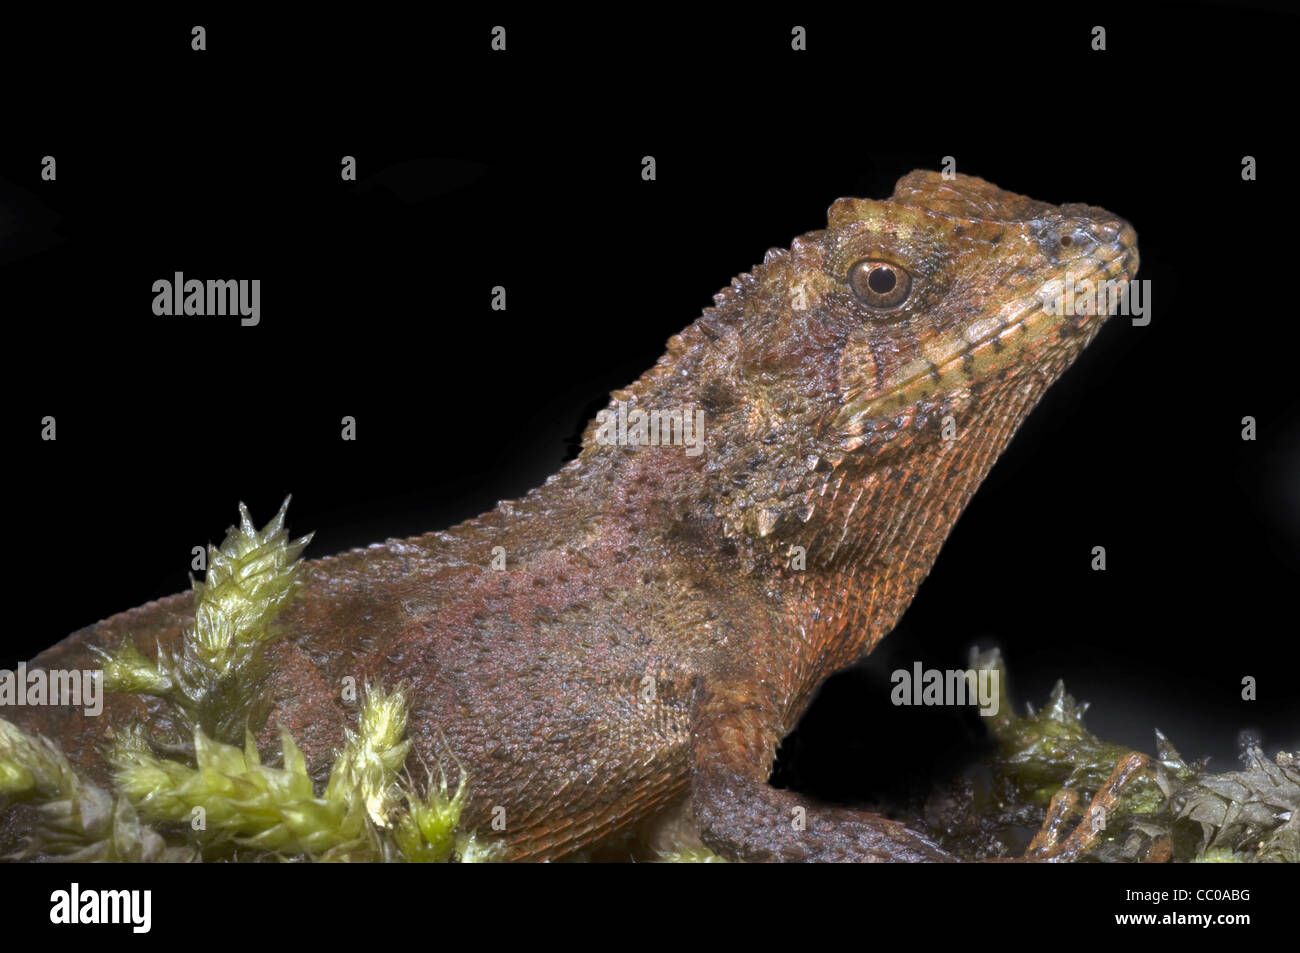 ANDERSON'S MOUNTAIN LIZARD, Japalura andersoniana, an agamid species from northeast India - Stock Image